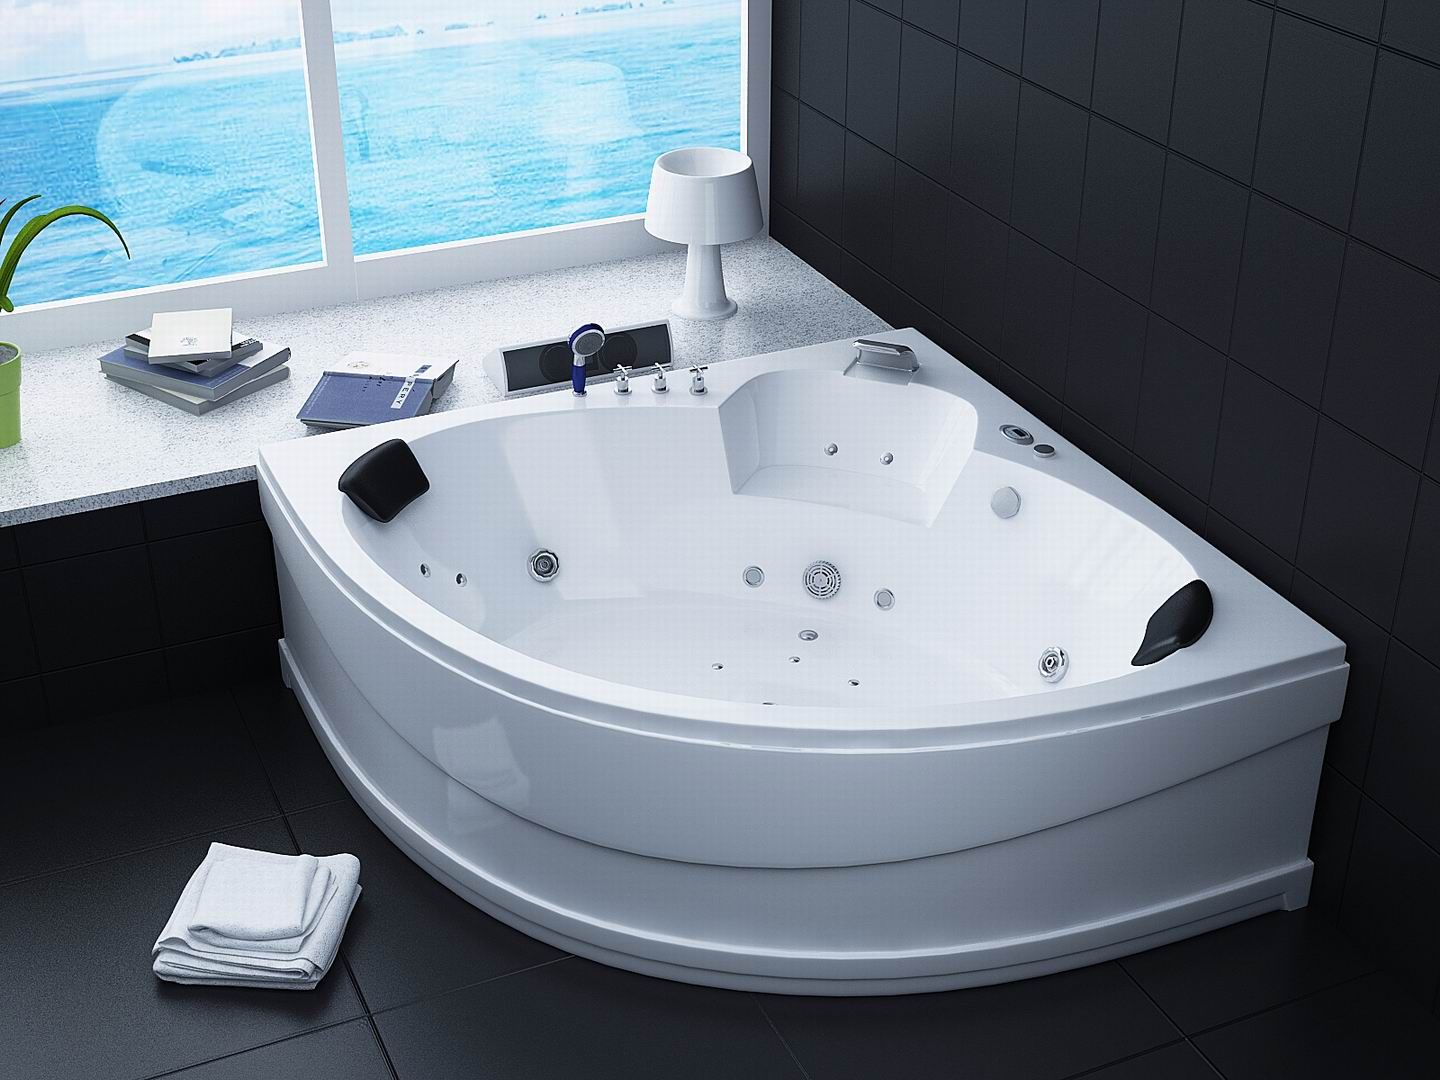 Bathroom Jacuzzi bathtubs | china jacuzzi bathtub (mt-nr1801) - large image for